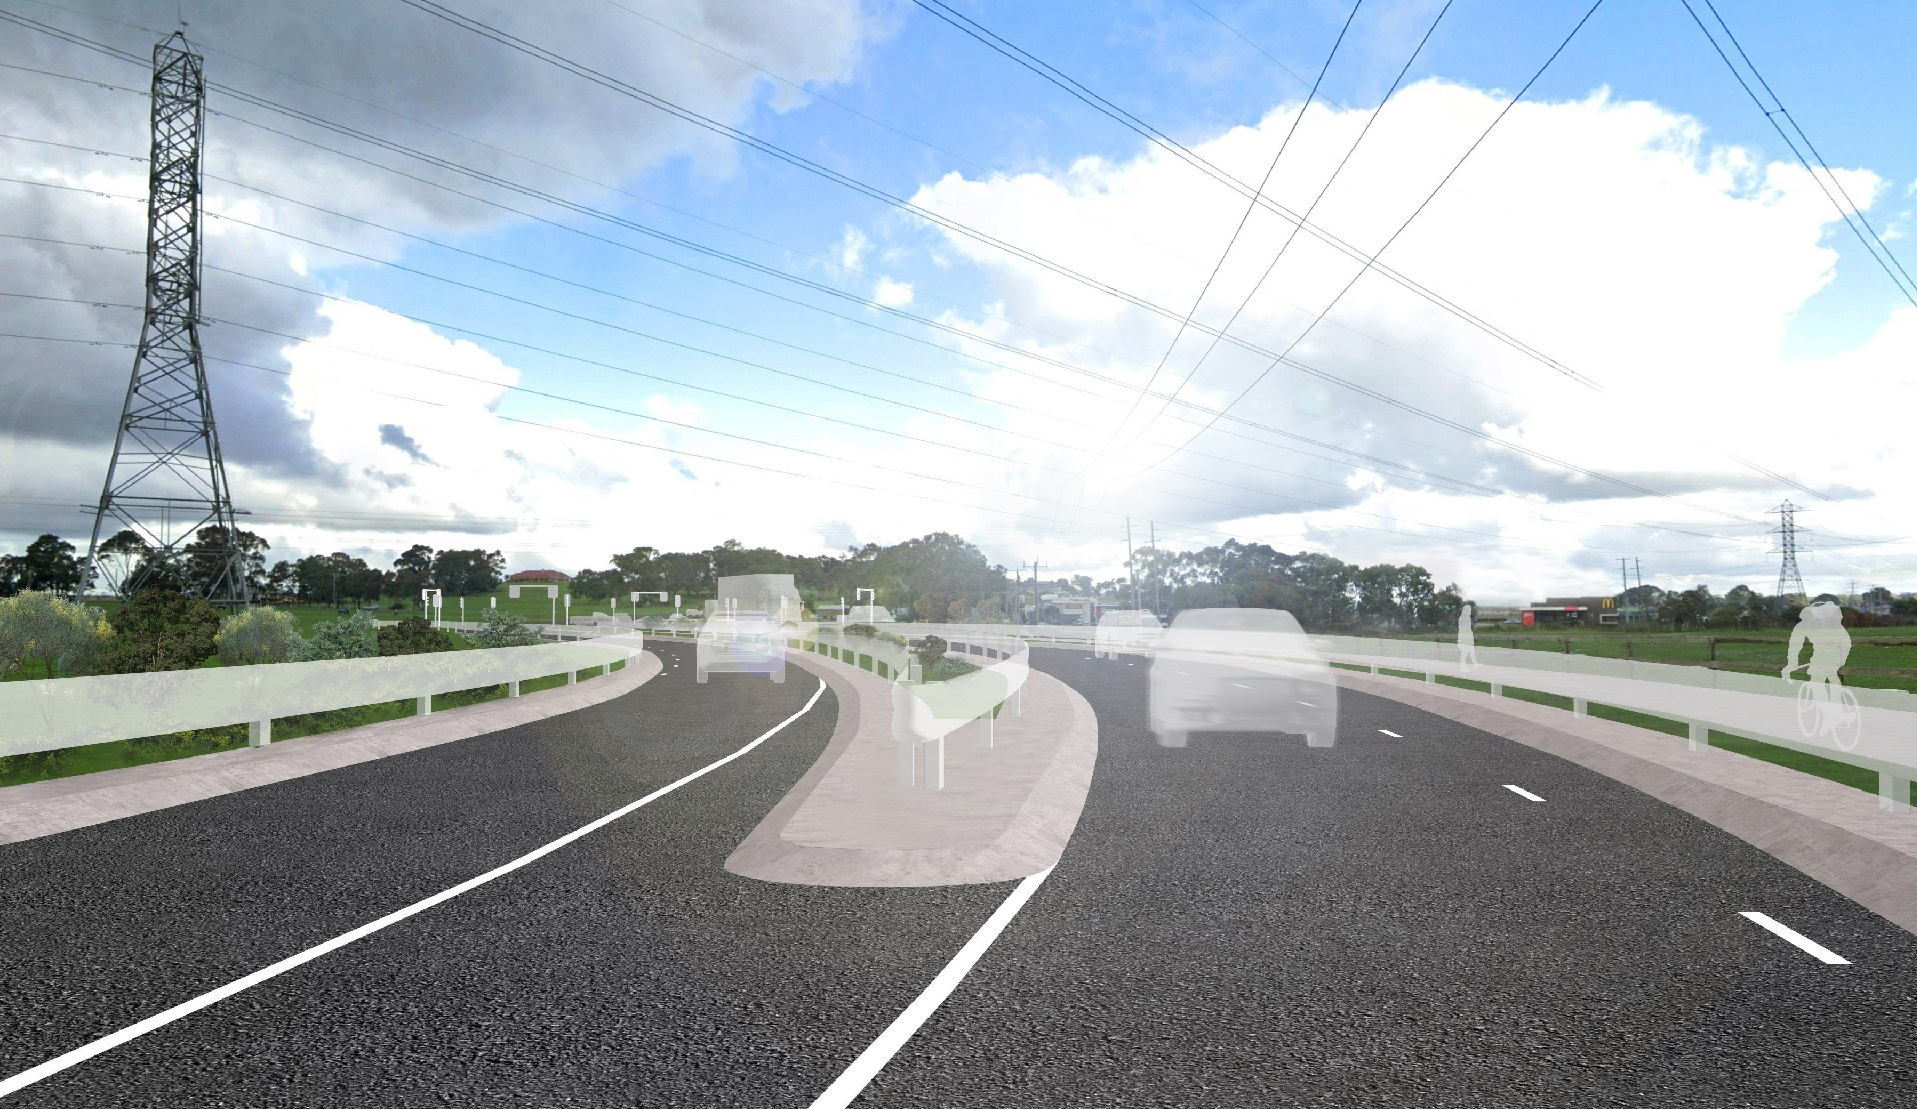 Artist impression of the Bridge Inn Road Intersection 1 year on from completion